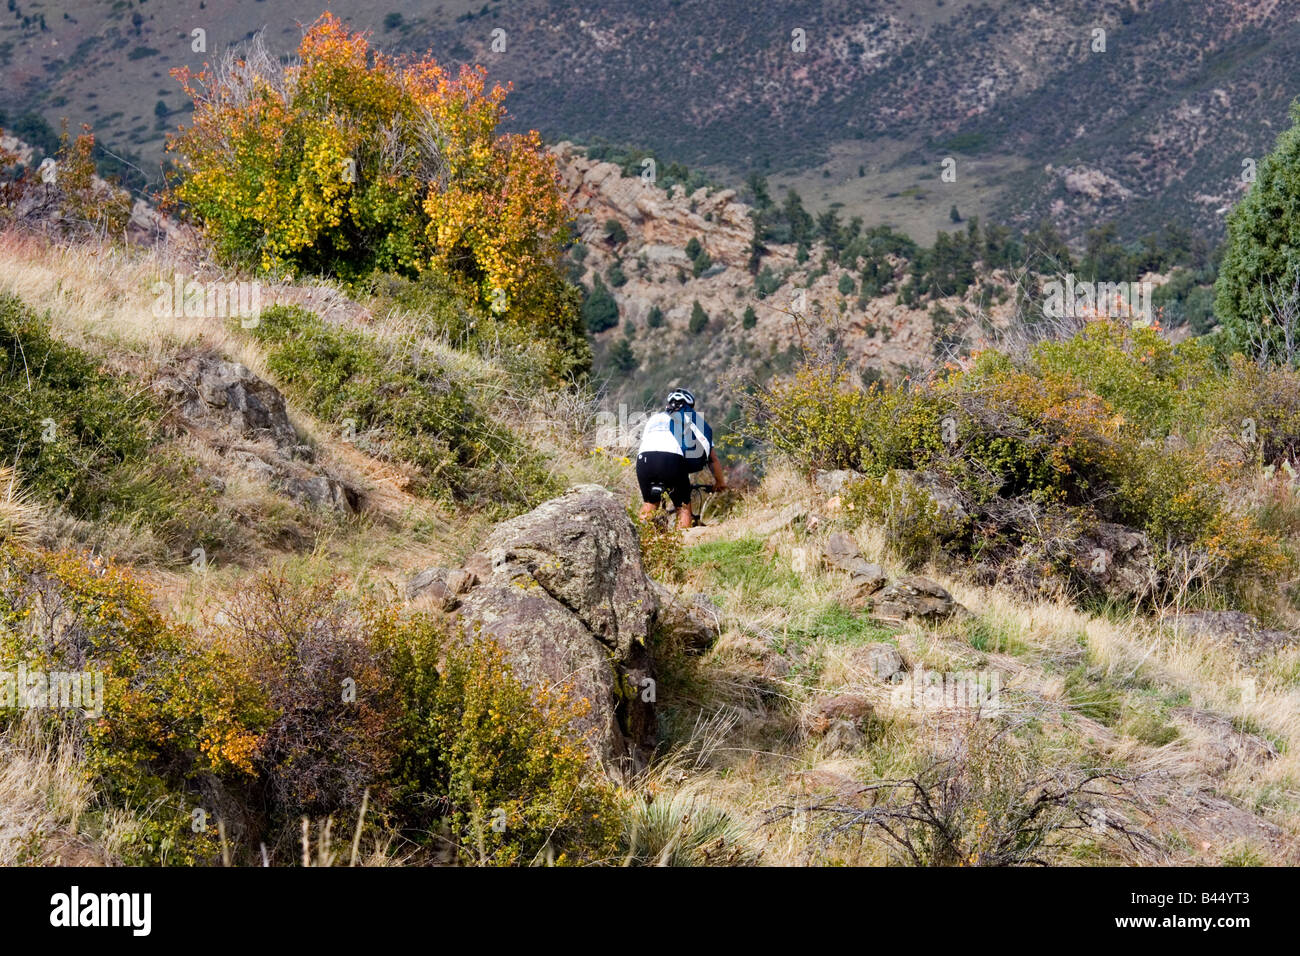 Mountain Bikers Ride The Rugged Trails Of White Ranch Park Near Golden  Colorado On A Warm Early Autumn Afternoon